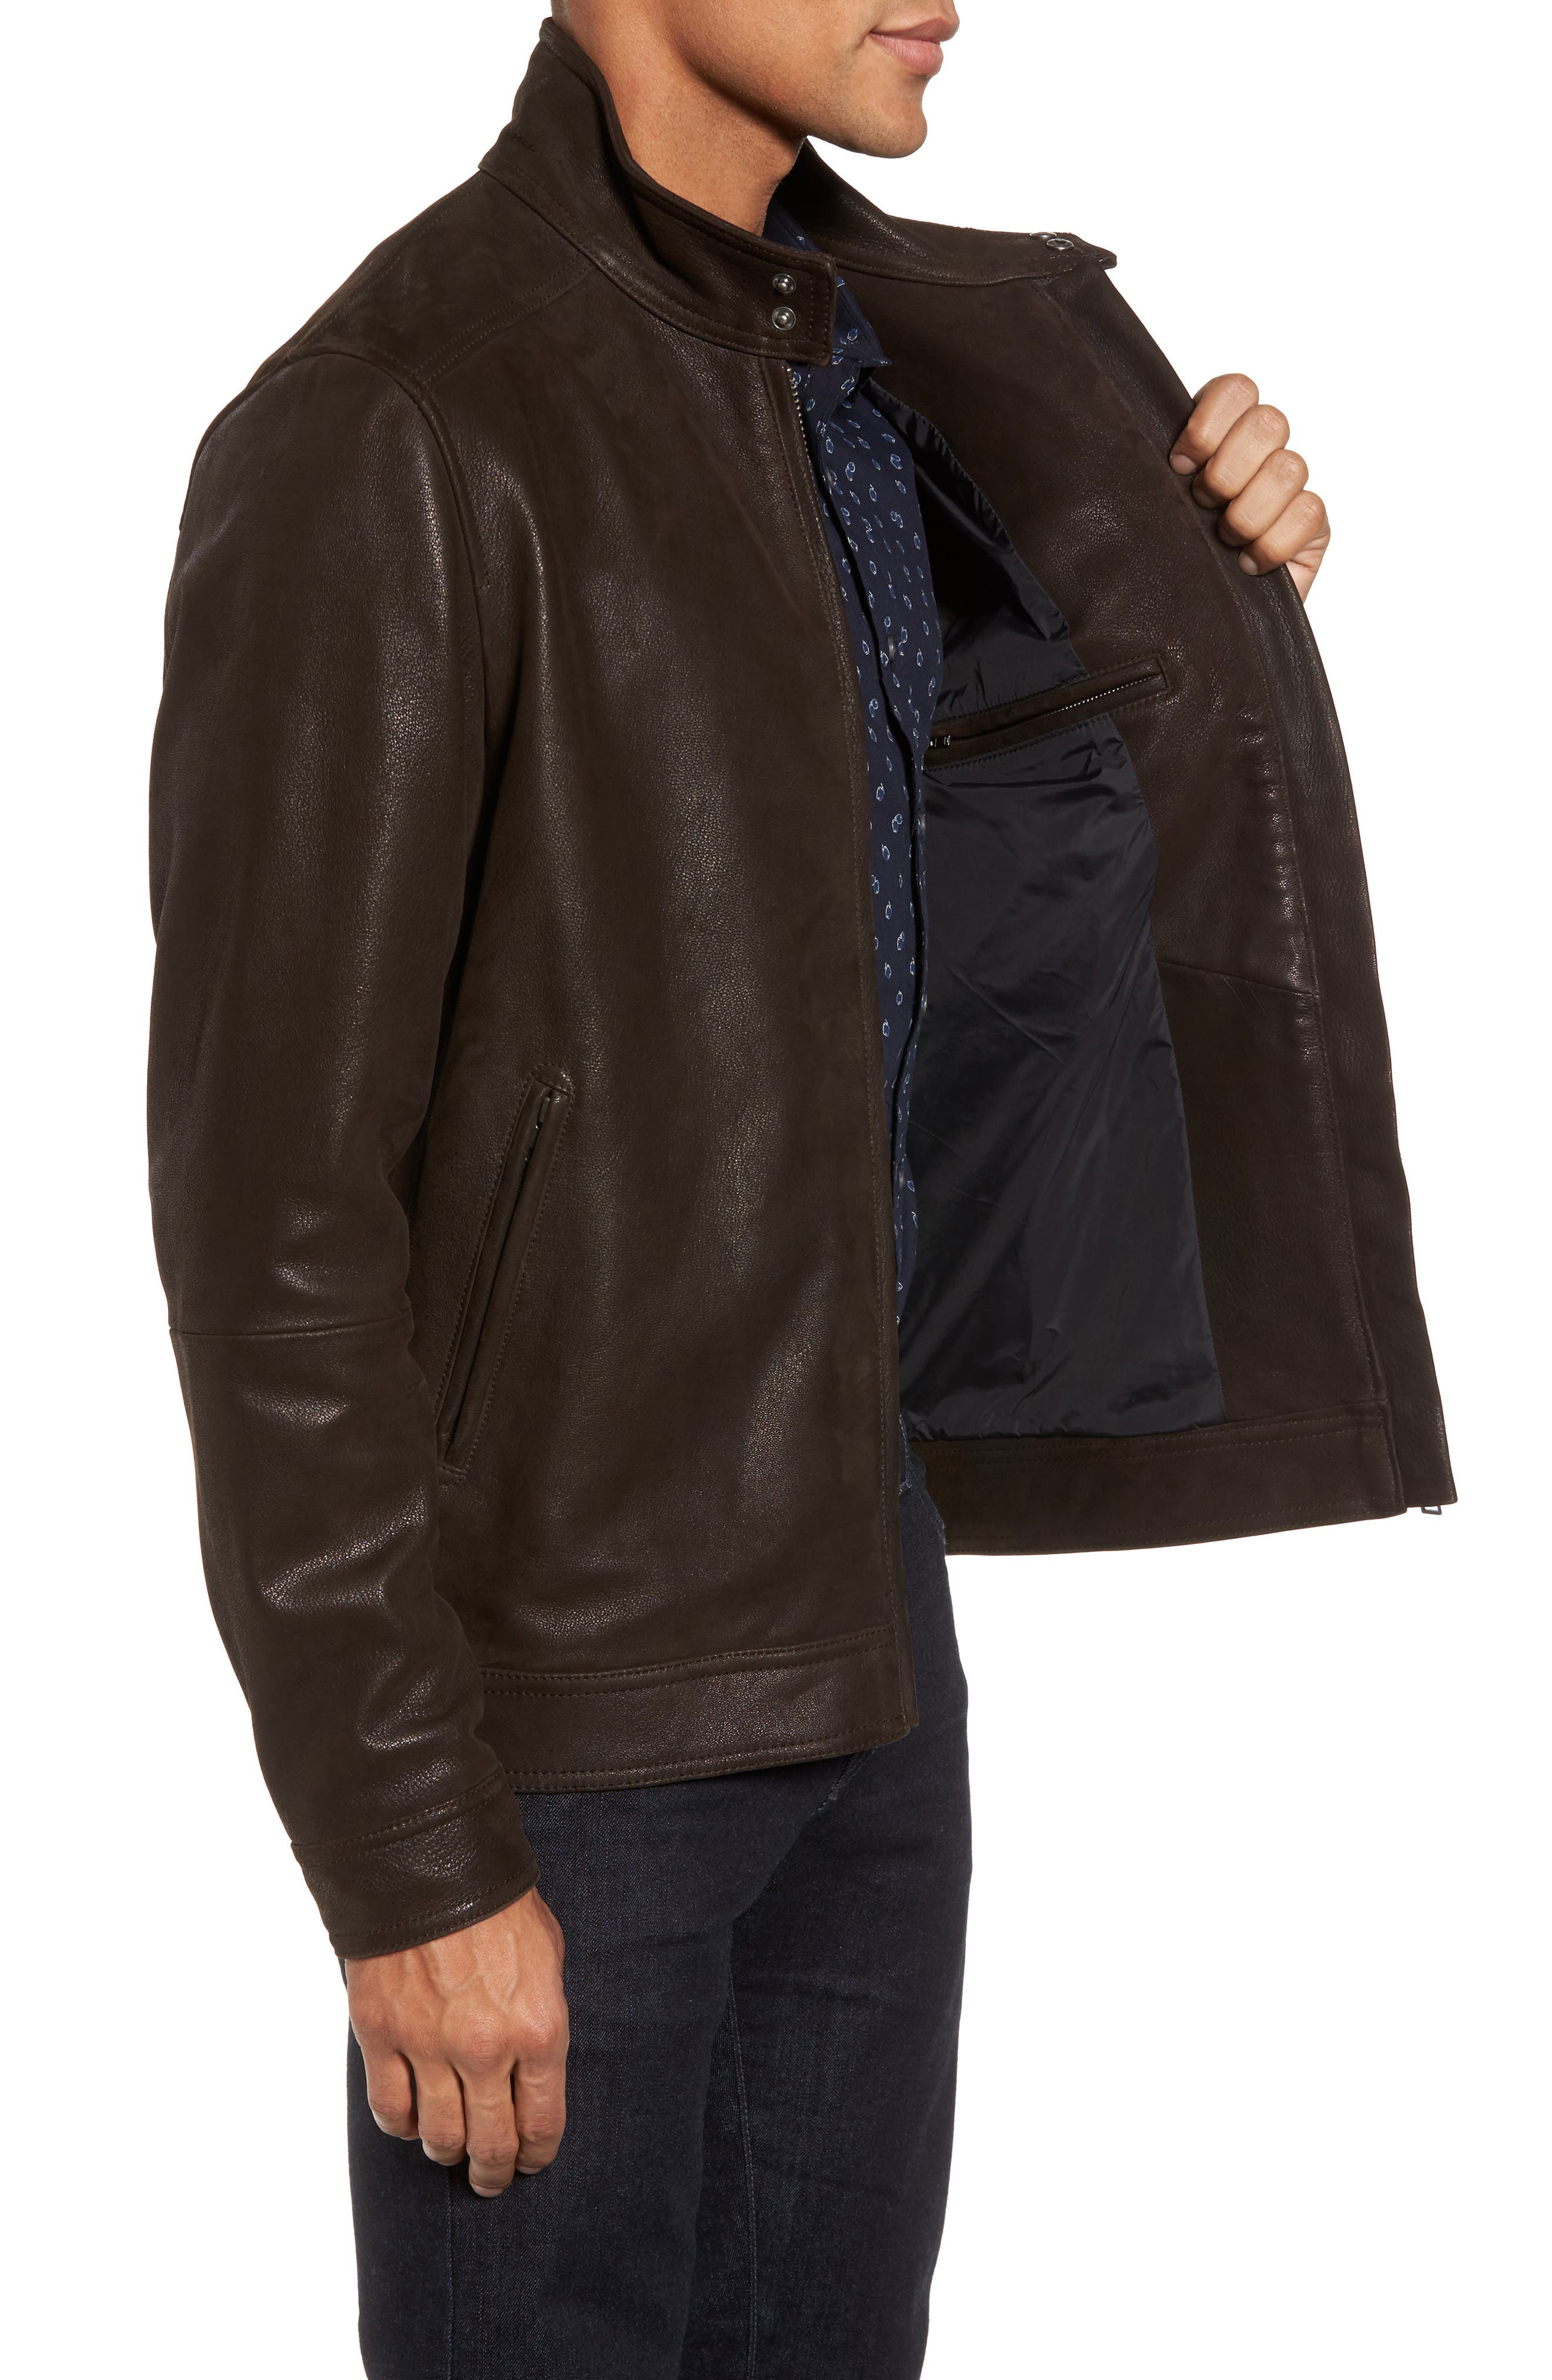 Westhaven Distressed Leather Bomber Jacket,                             Alternate thumbnail 3, color,                             Chocolate